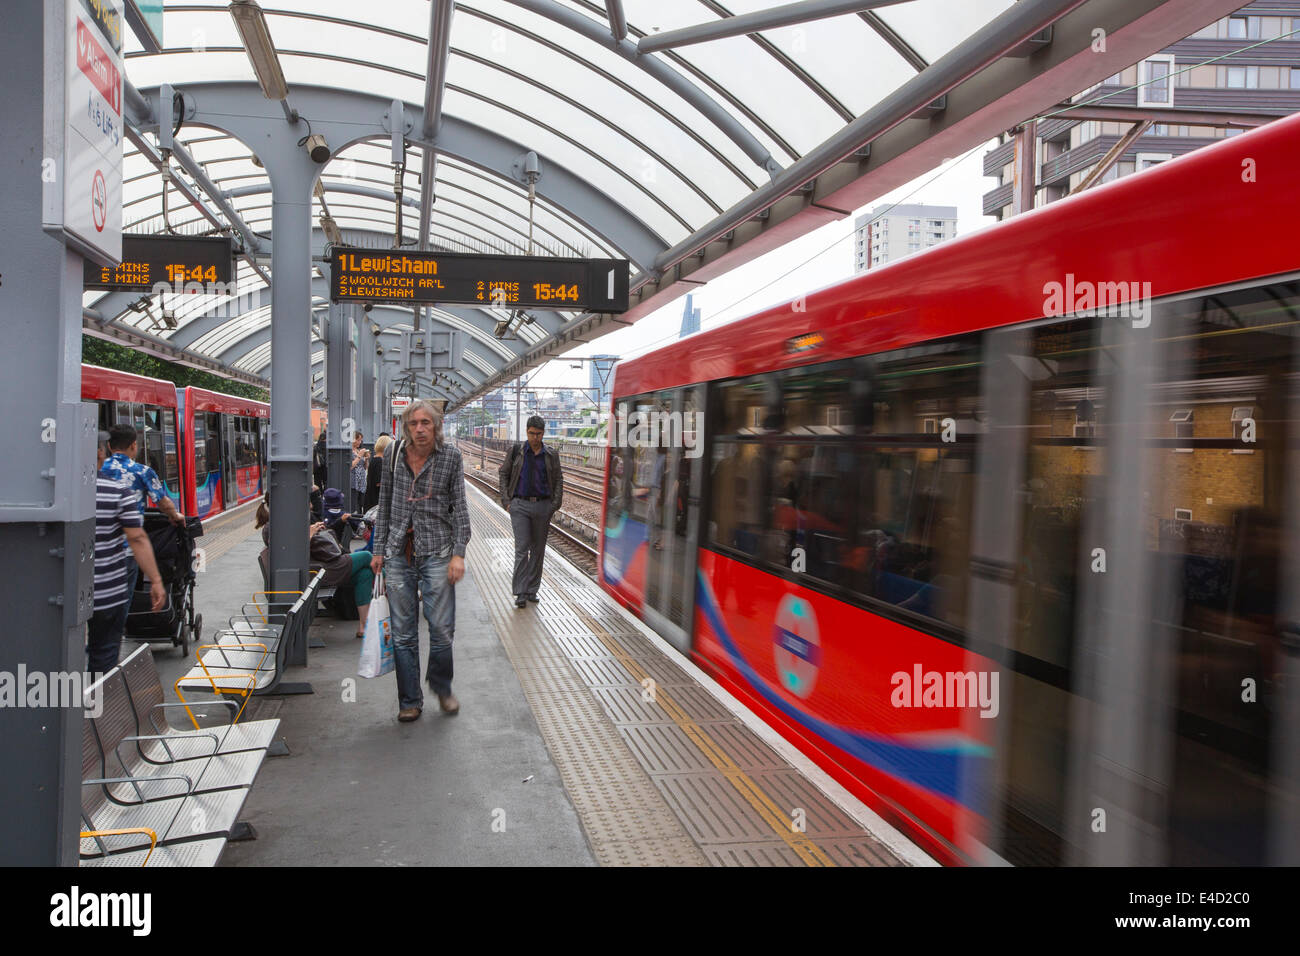 A Docklands Light Railway train (DLR) at a station near Canary wharf, London, UK. - Stock Image